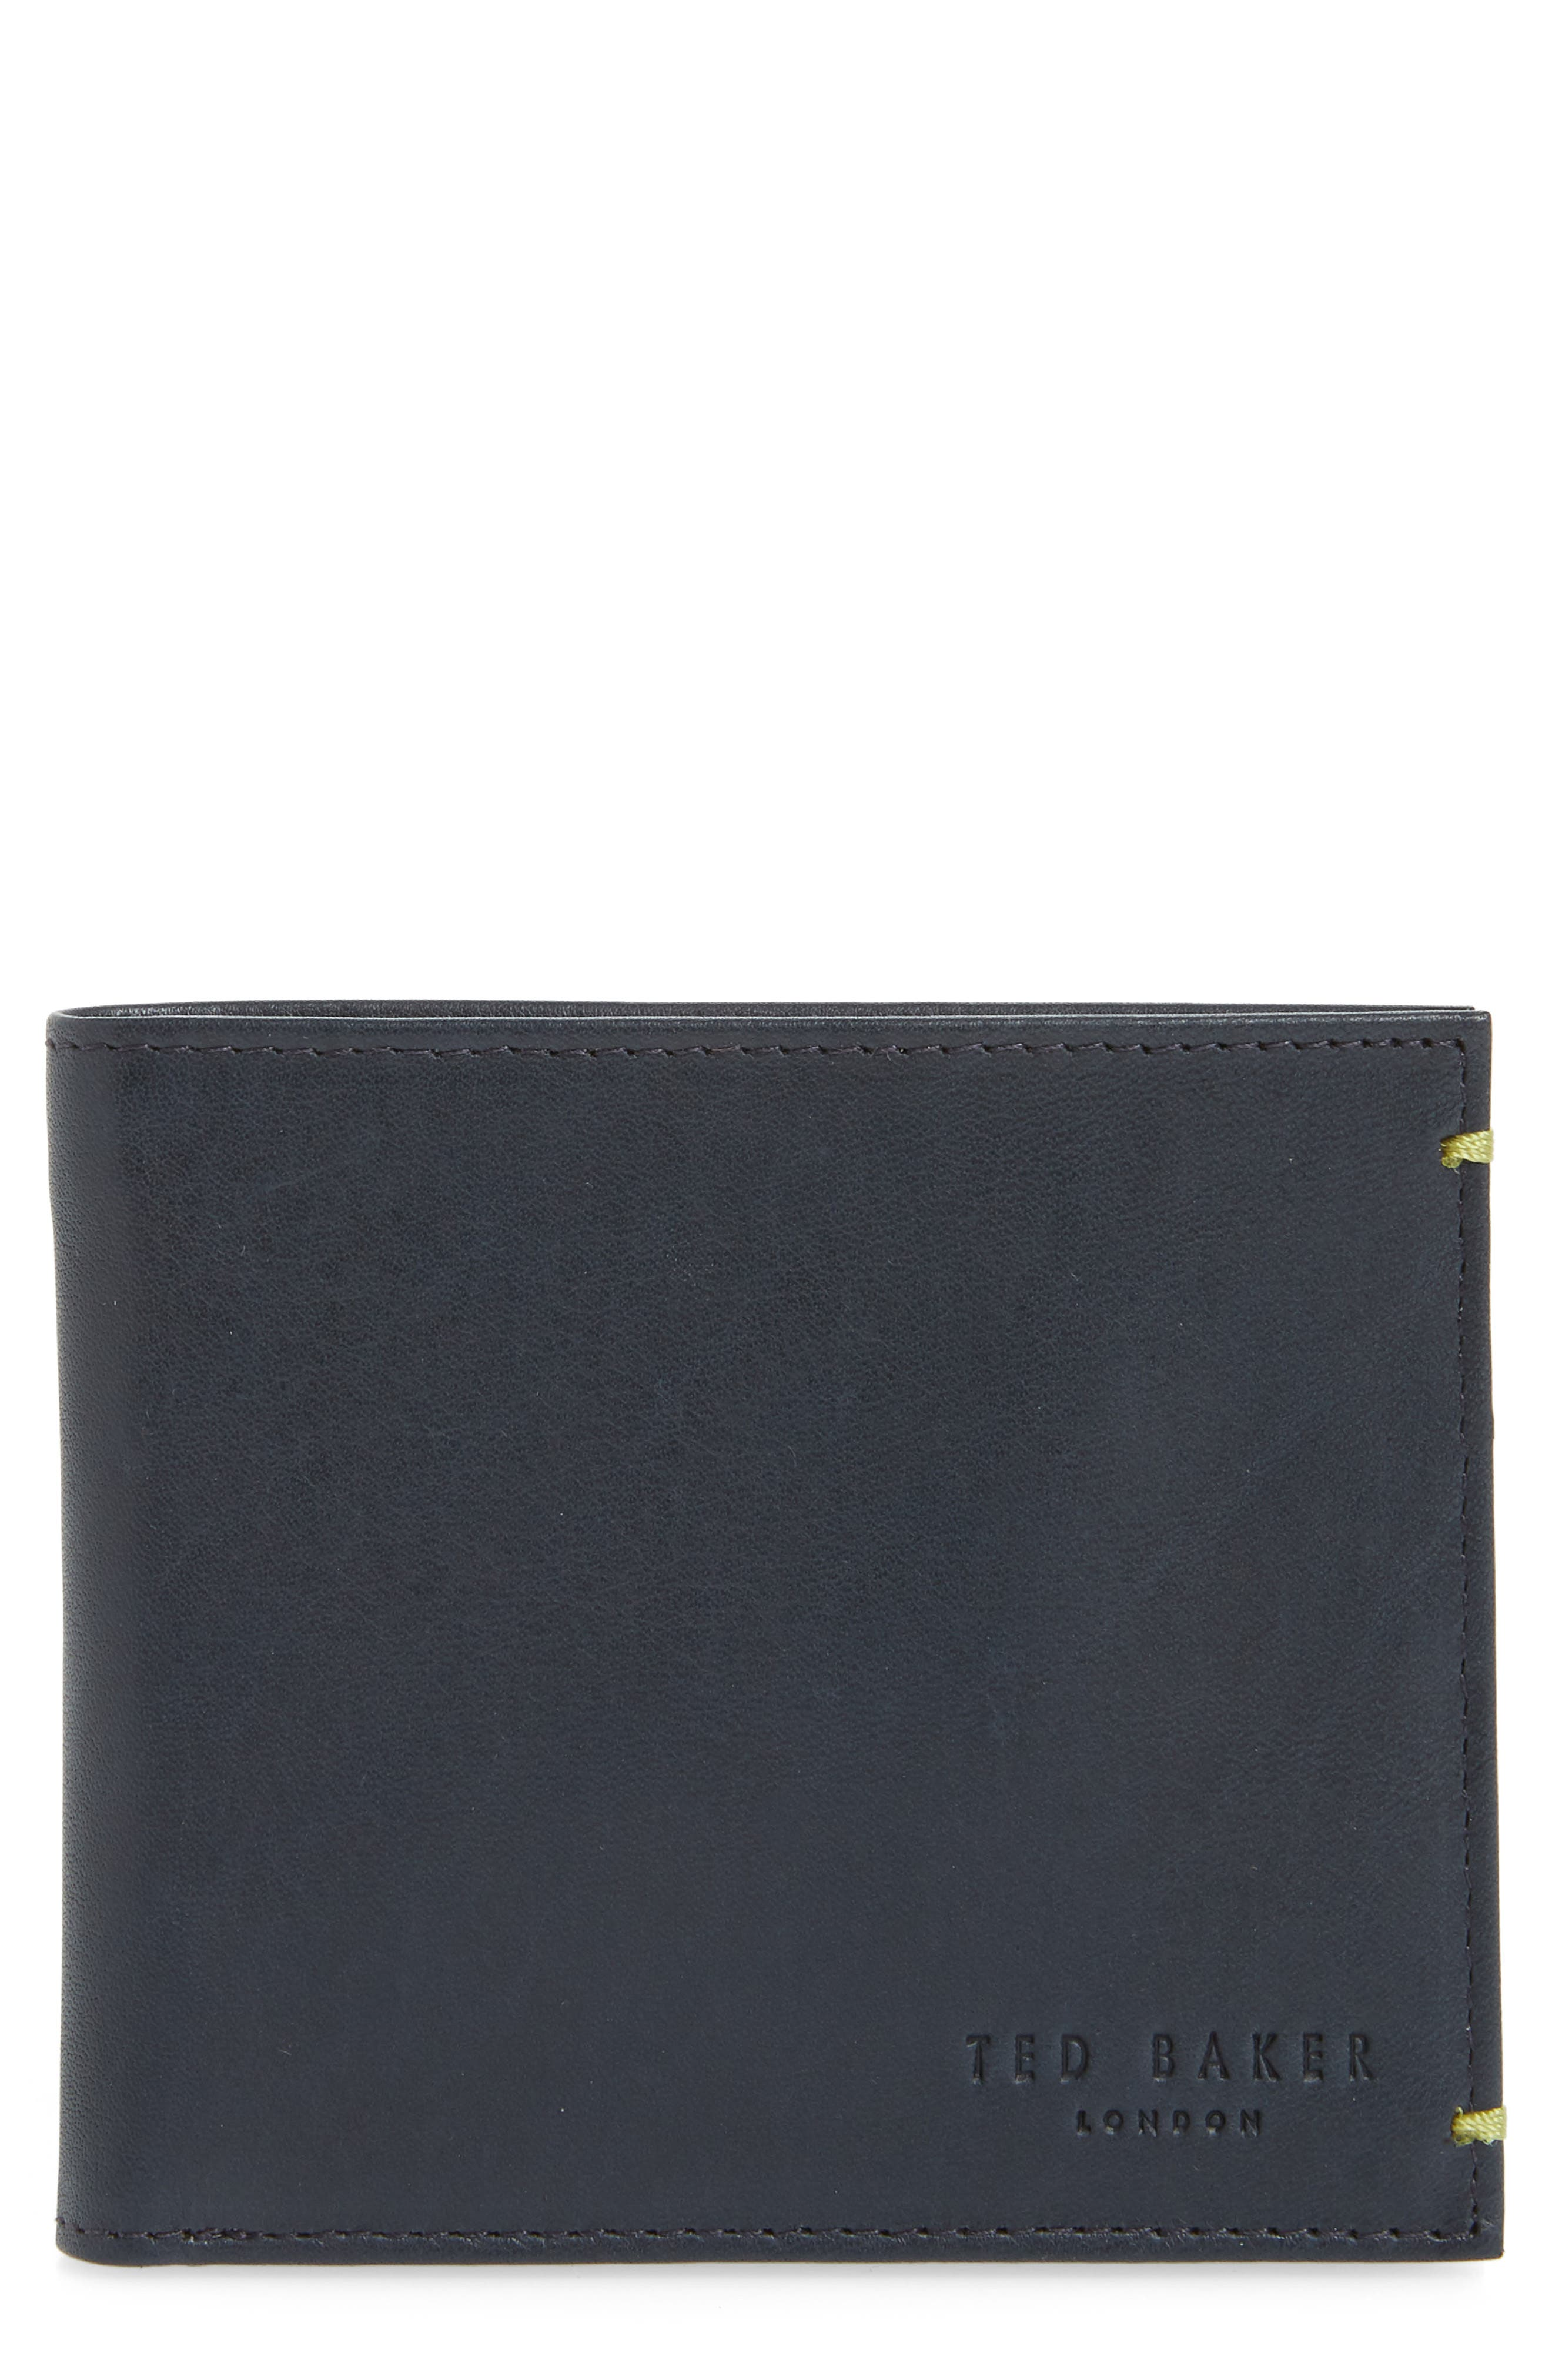 Rester Leather Bifold Wallet,                             Main thumbnail 1, color,                             Navy